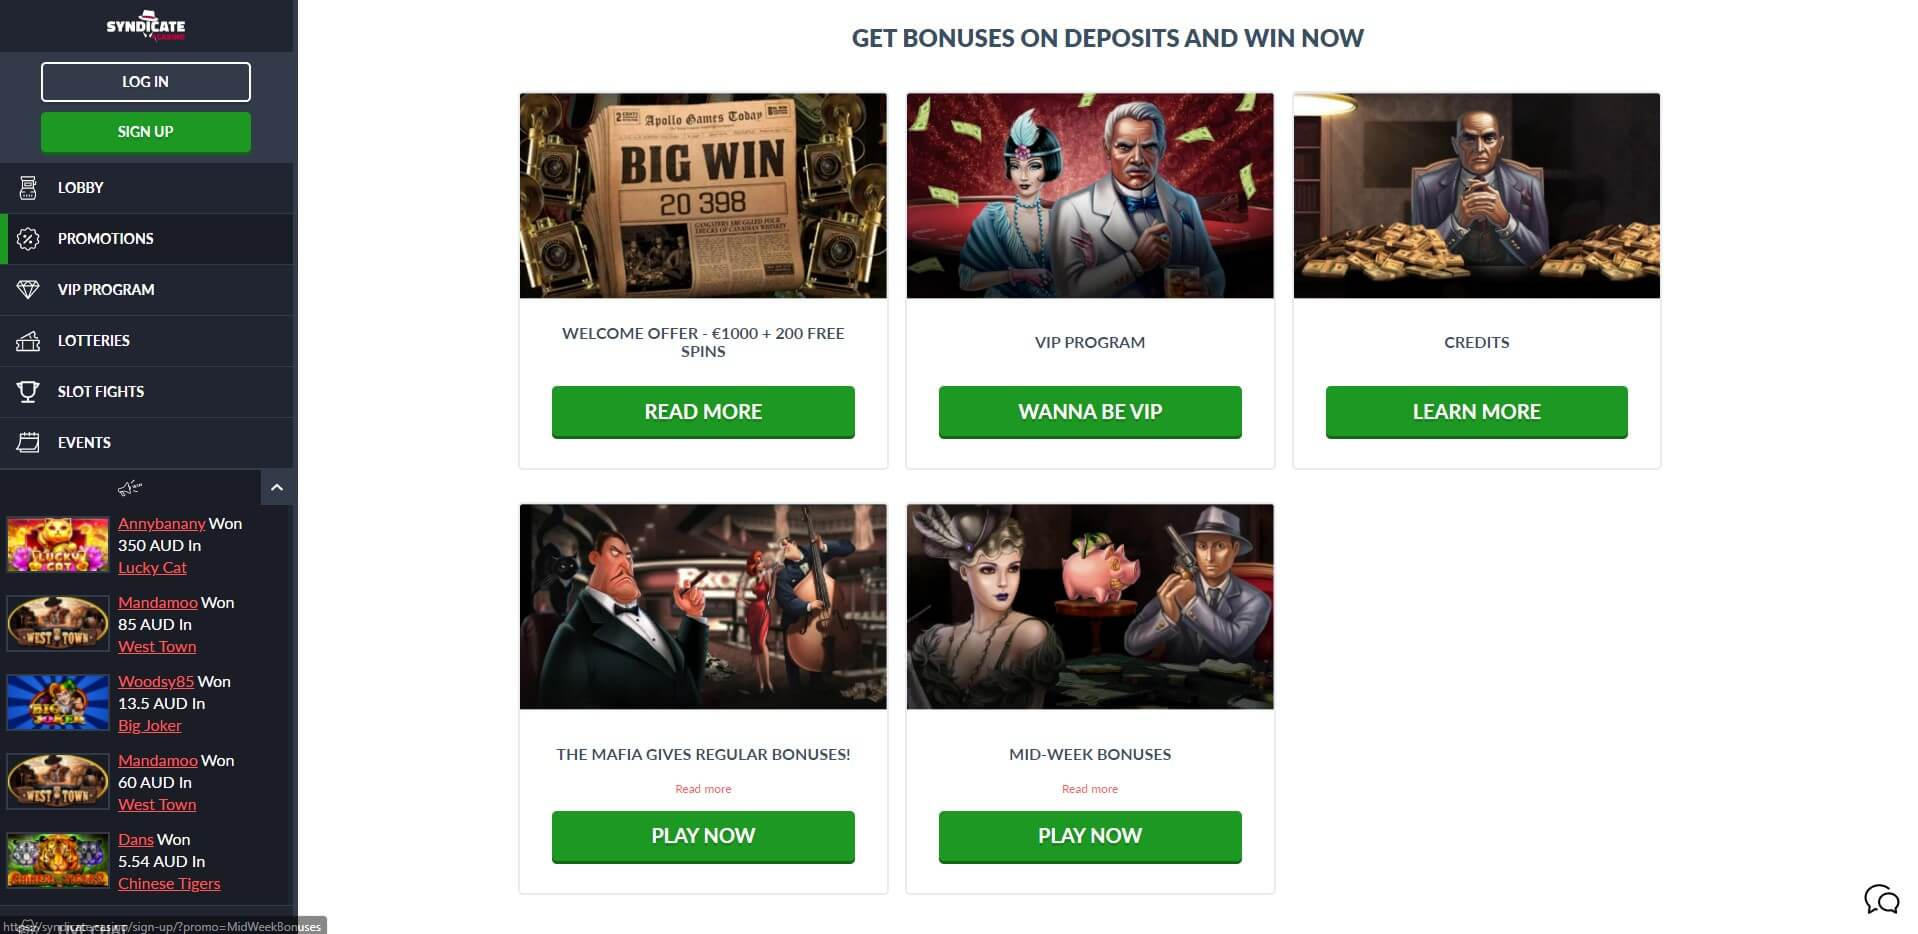 Promotions at Syndicate Casino